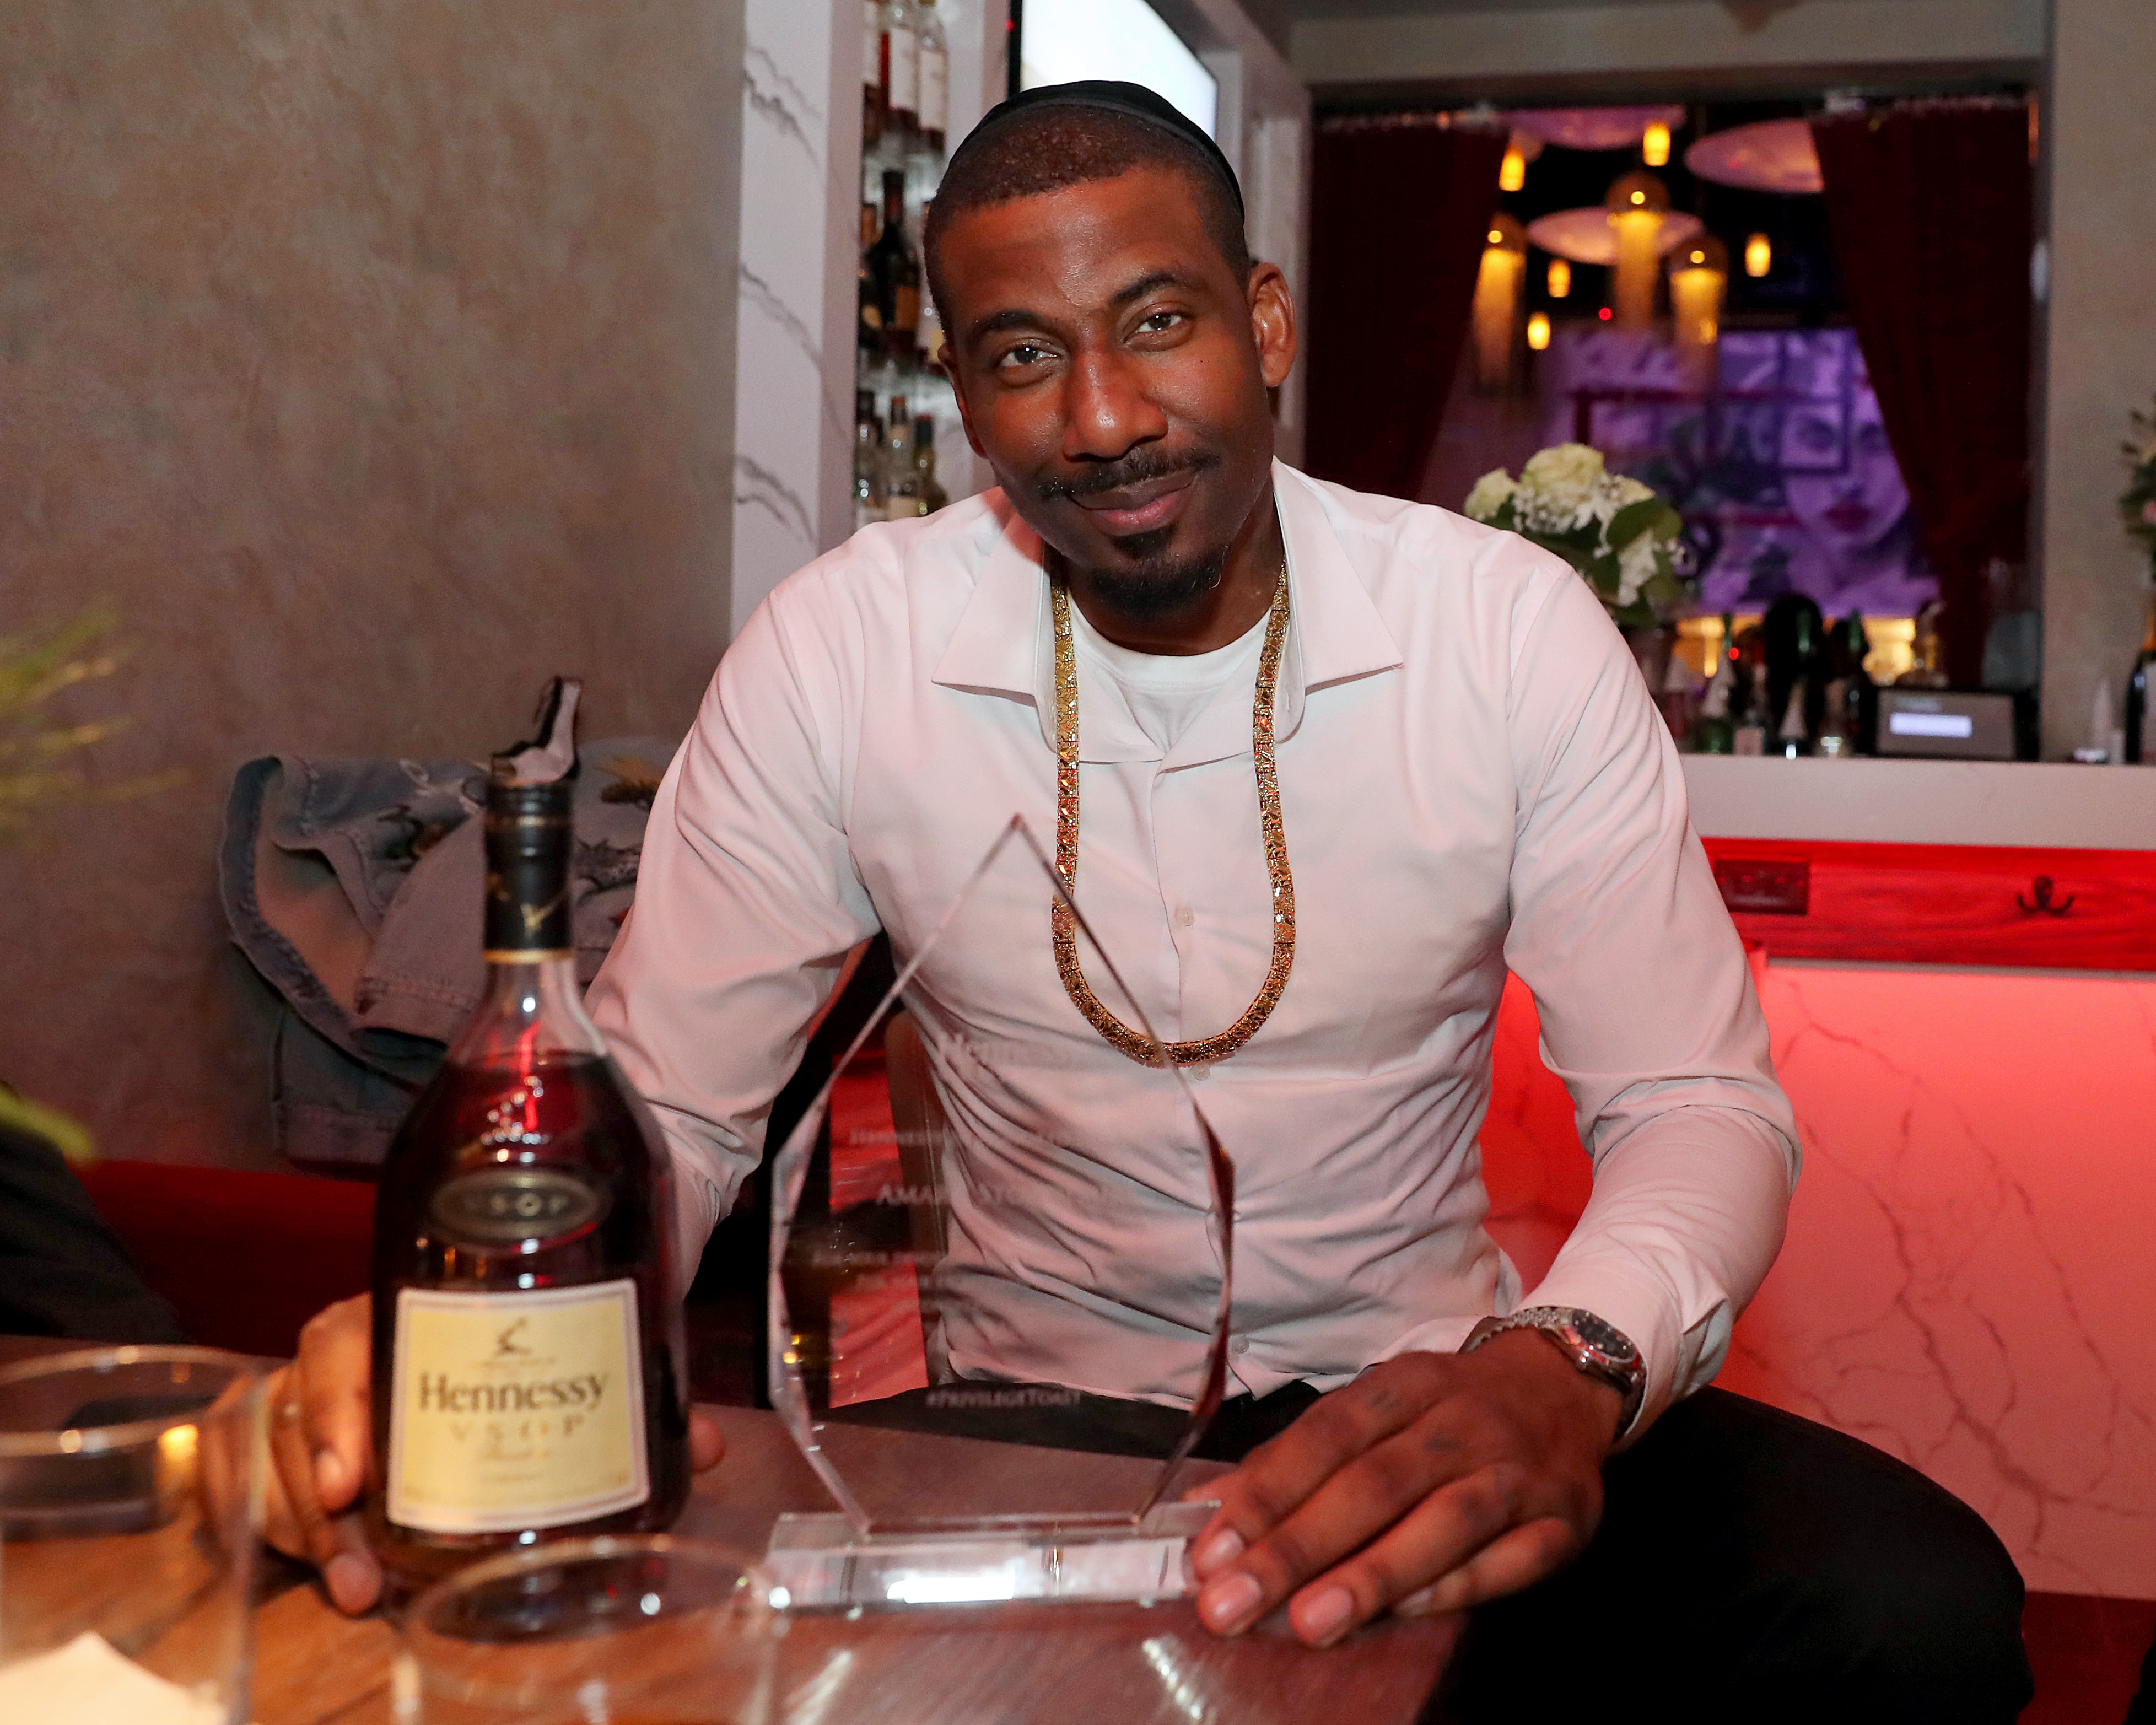 Amar'e Stoudemire poses during a Hennessy toast in 2021